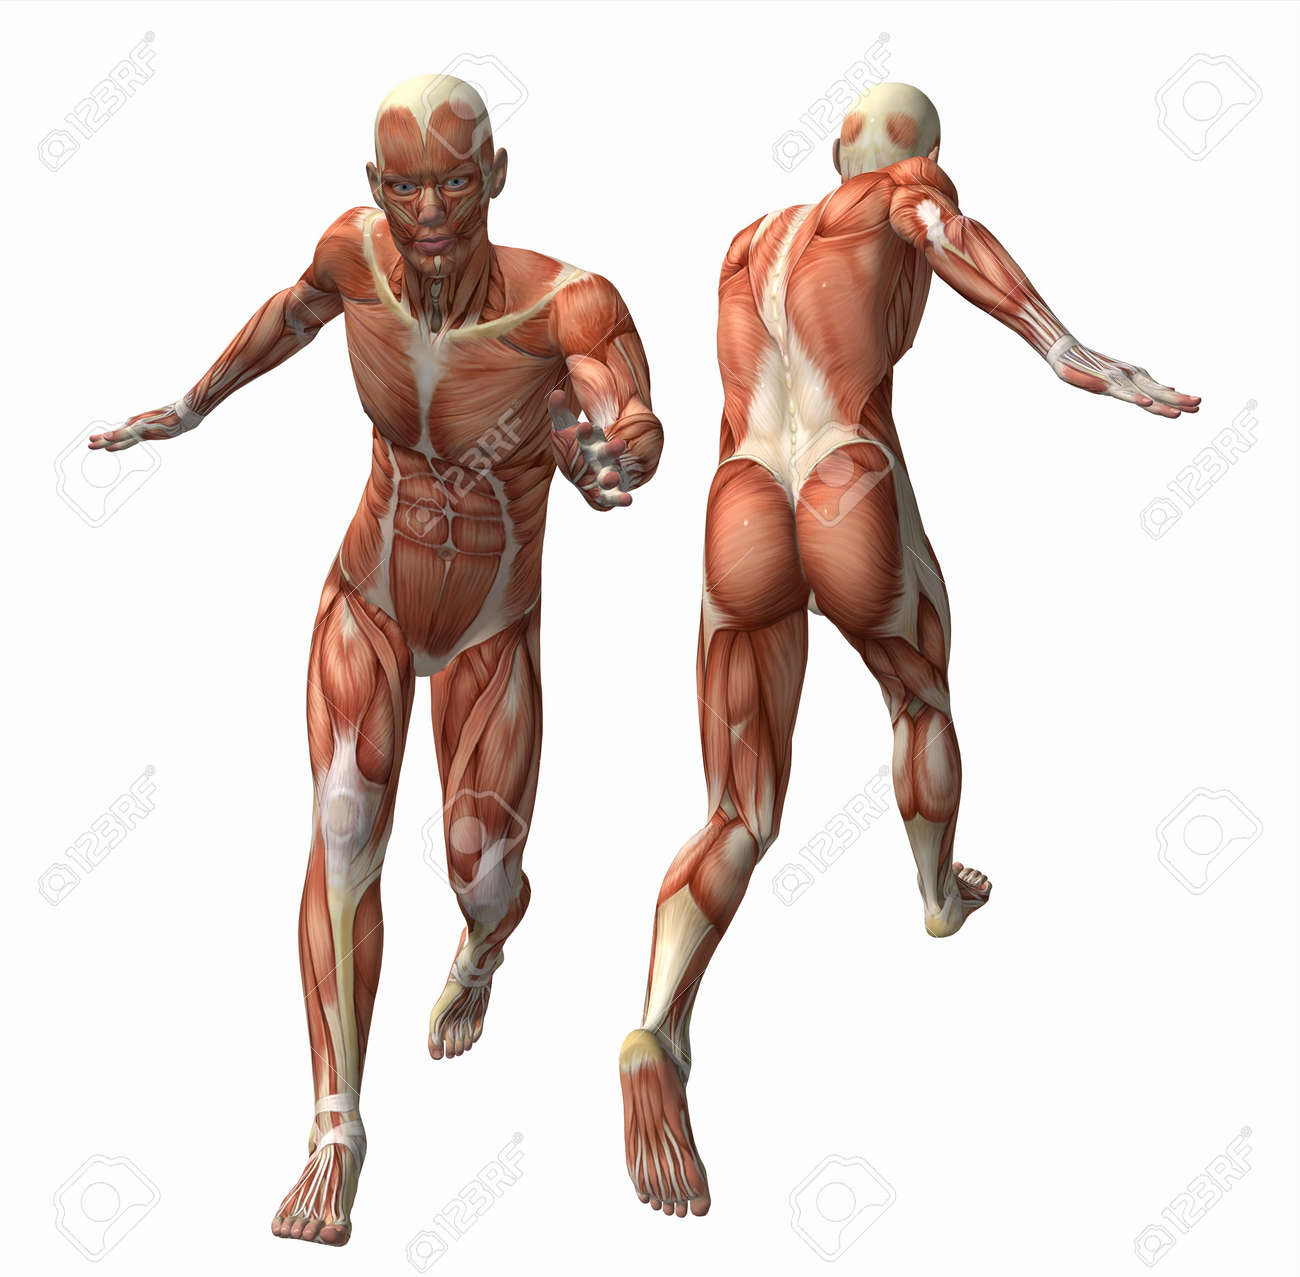 3d muscle model stock photo, picture and royalty free image. image, Muscles